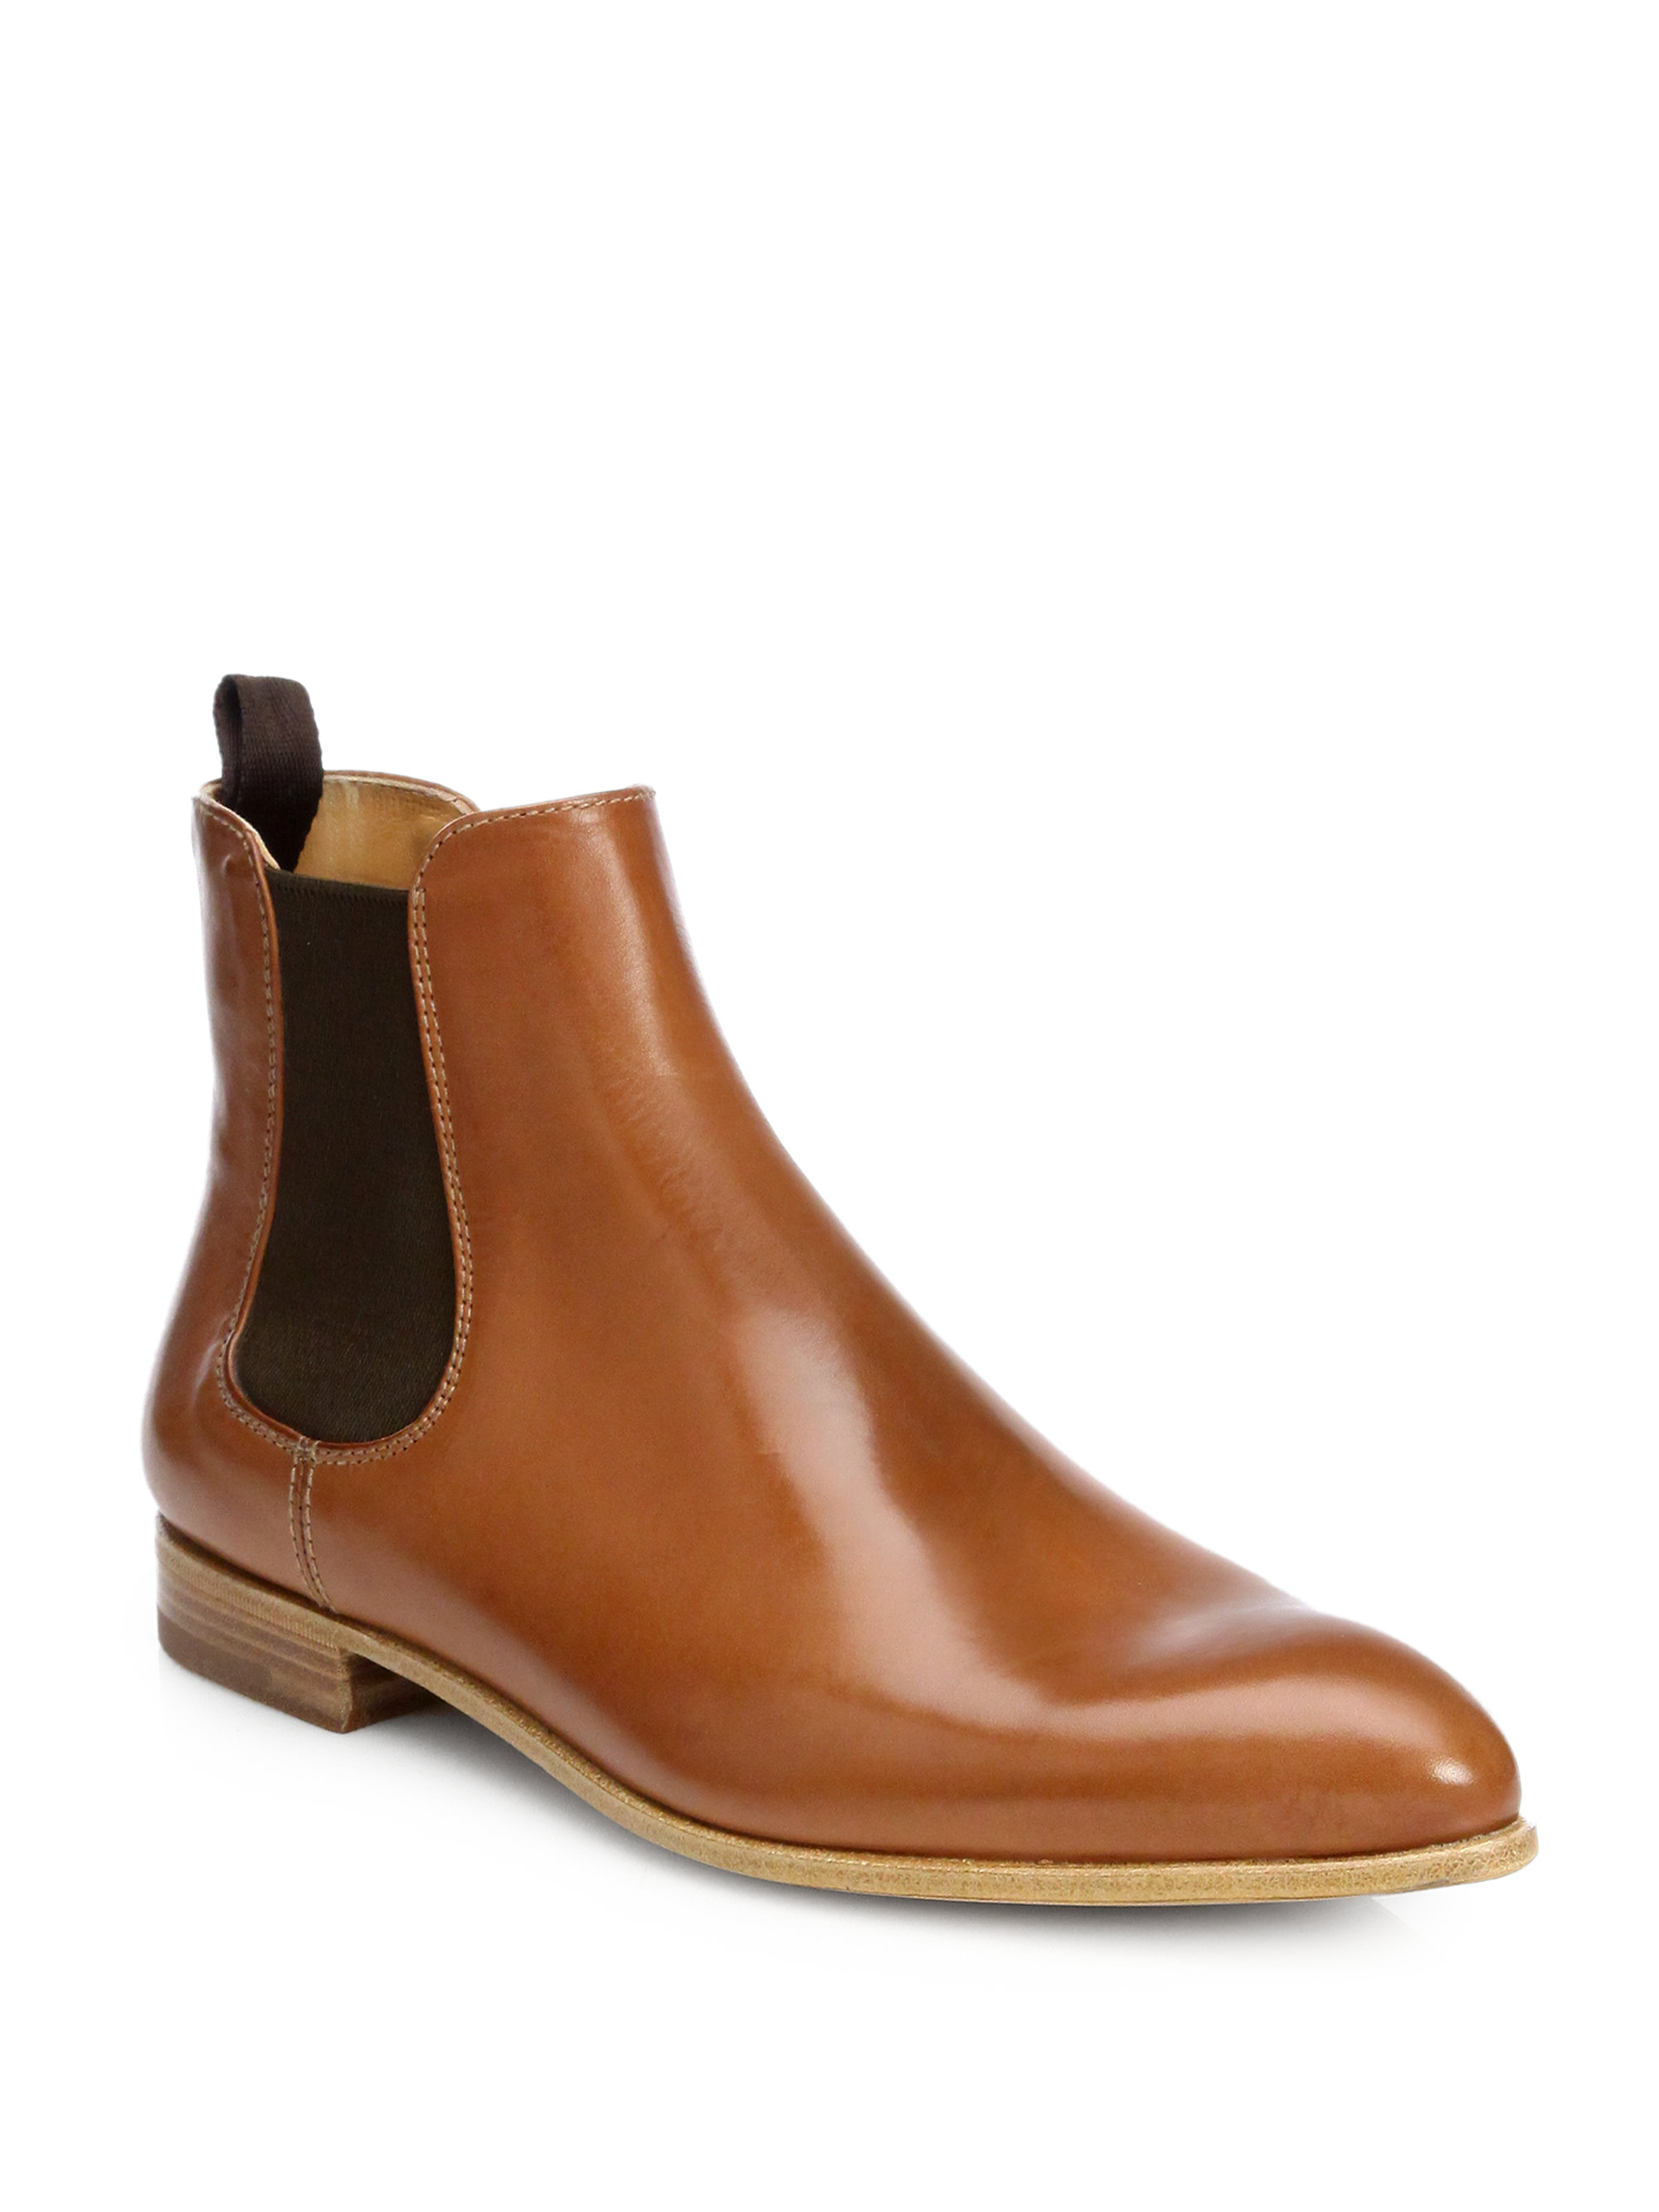 Prada Leather Ankle Boots in Brown (CUOIO-TAN) | Lyst